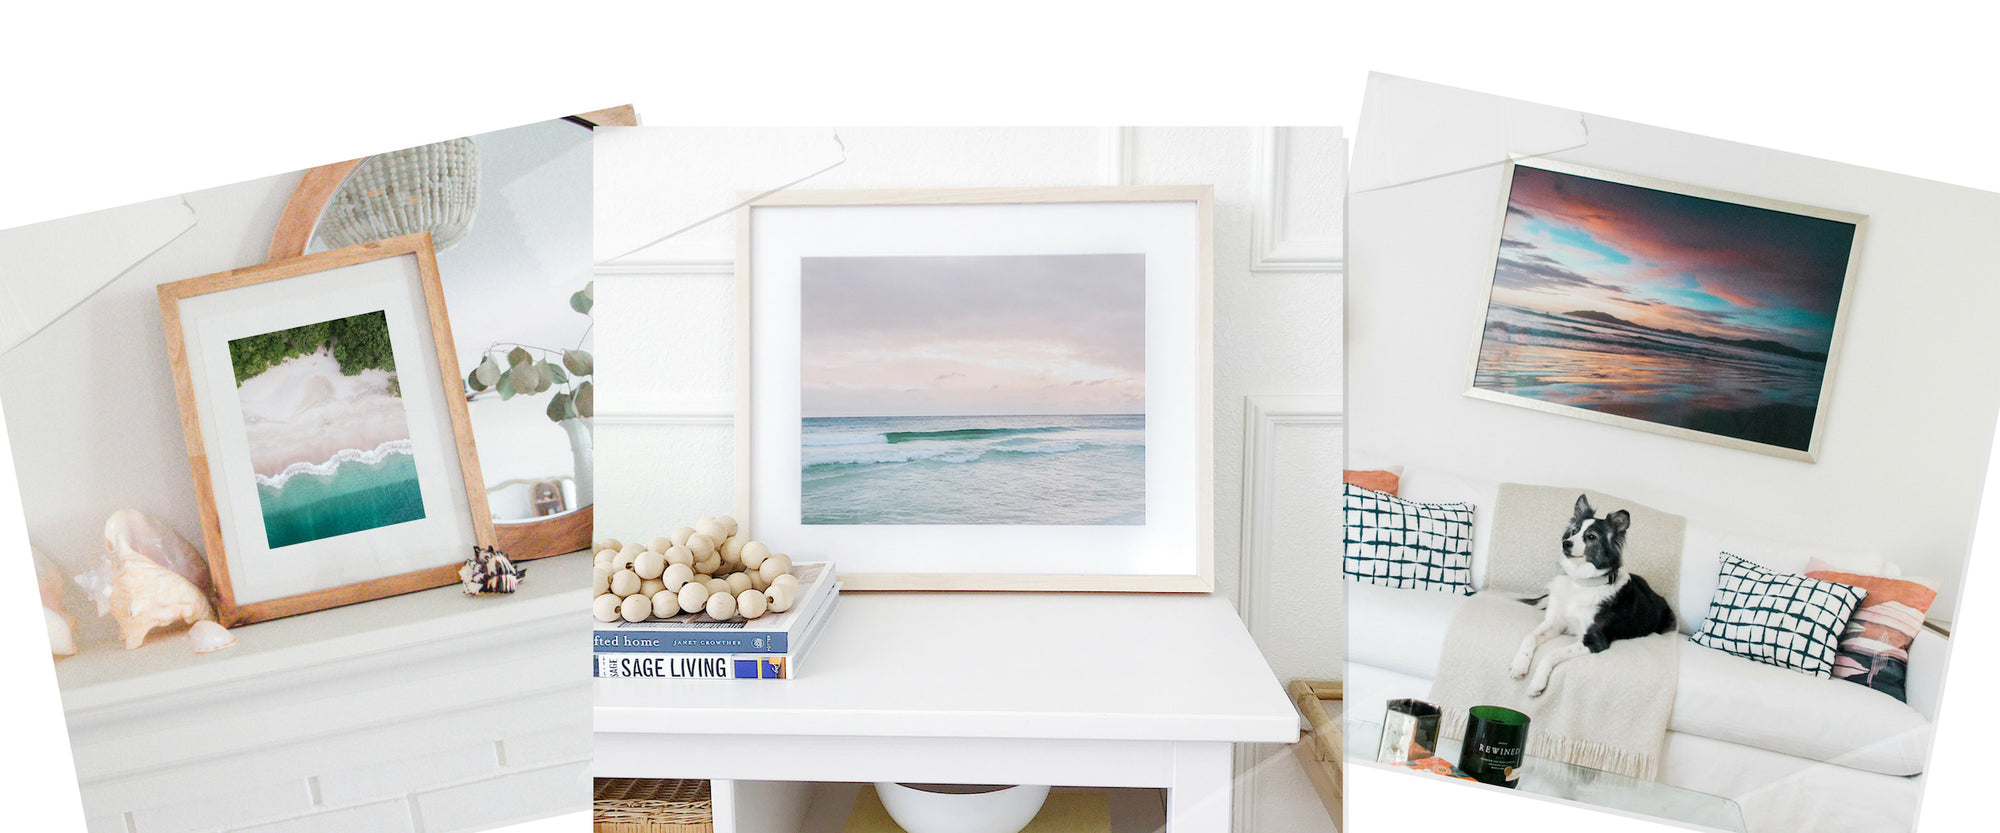 Sunset and beach framed wall art for your home. By Kristen M. Brown, Samba to the Sea at The Sunset Shop.